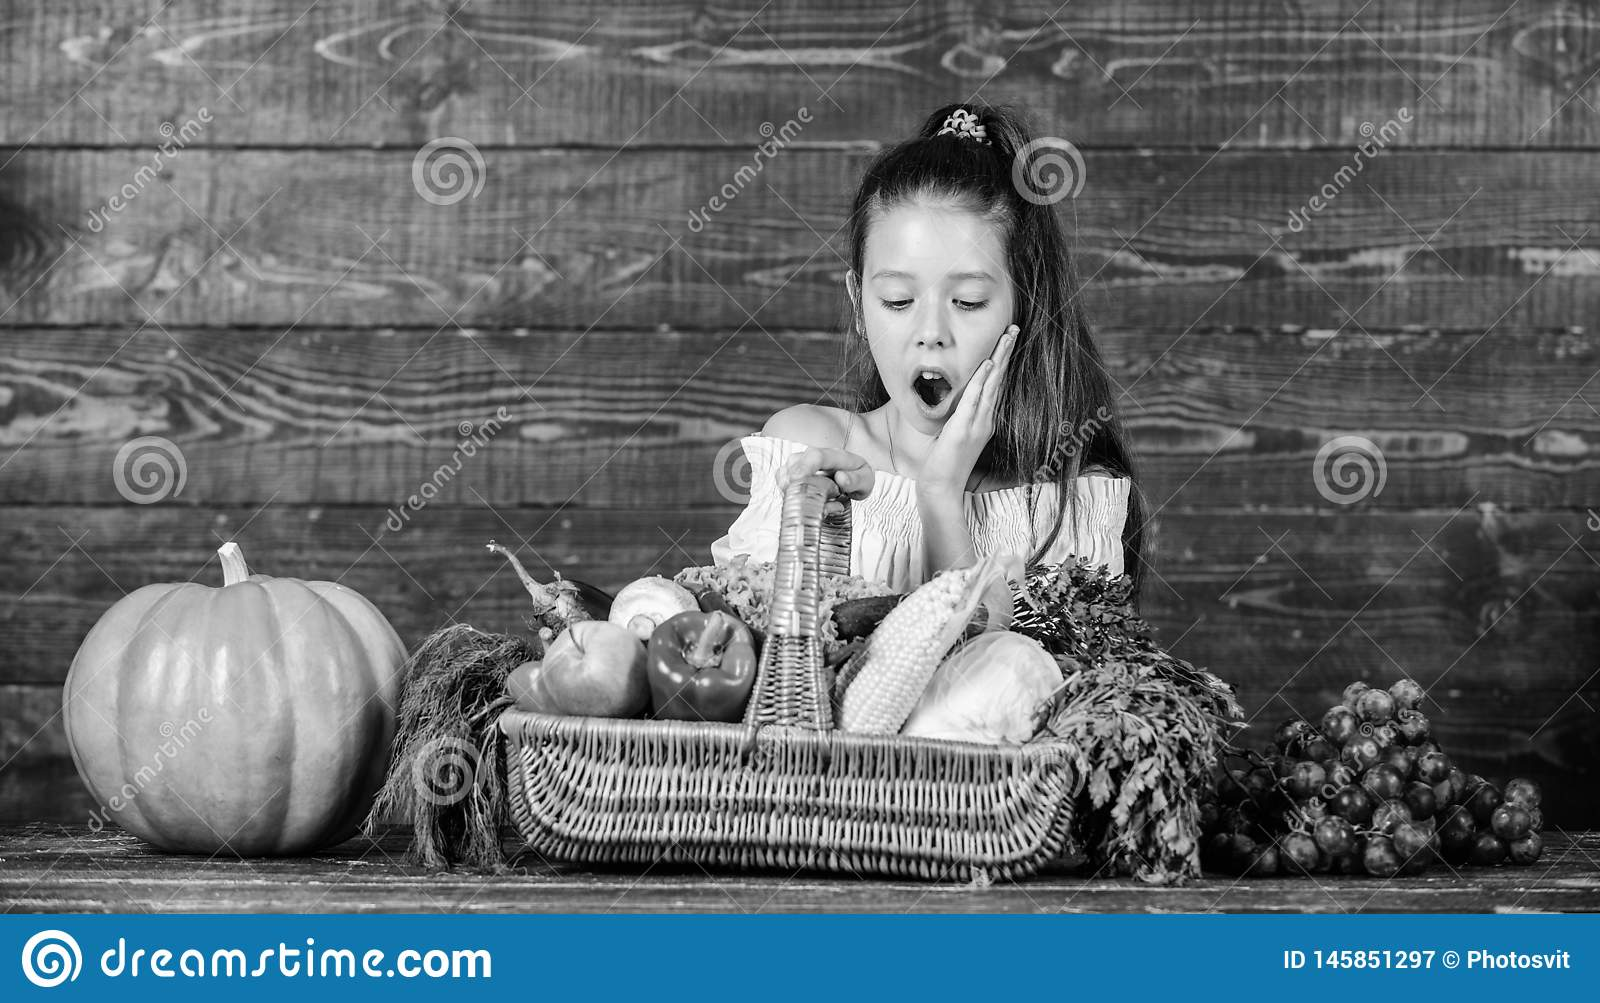 Harvest festival concept. Girl kid rustic style farmers market with fall harvest. Child cheerful celebrate harvest